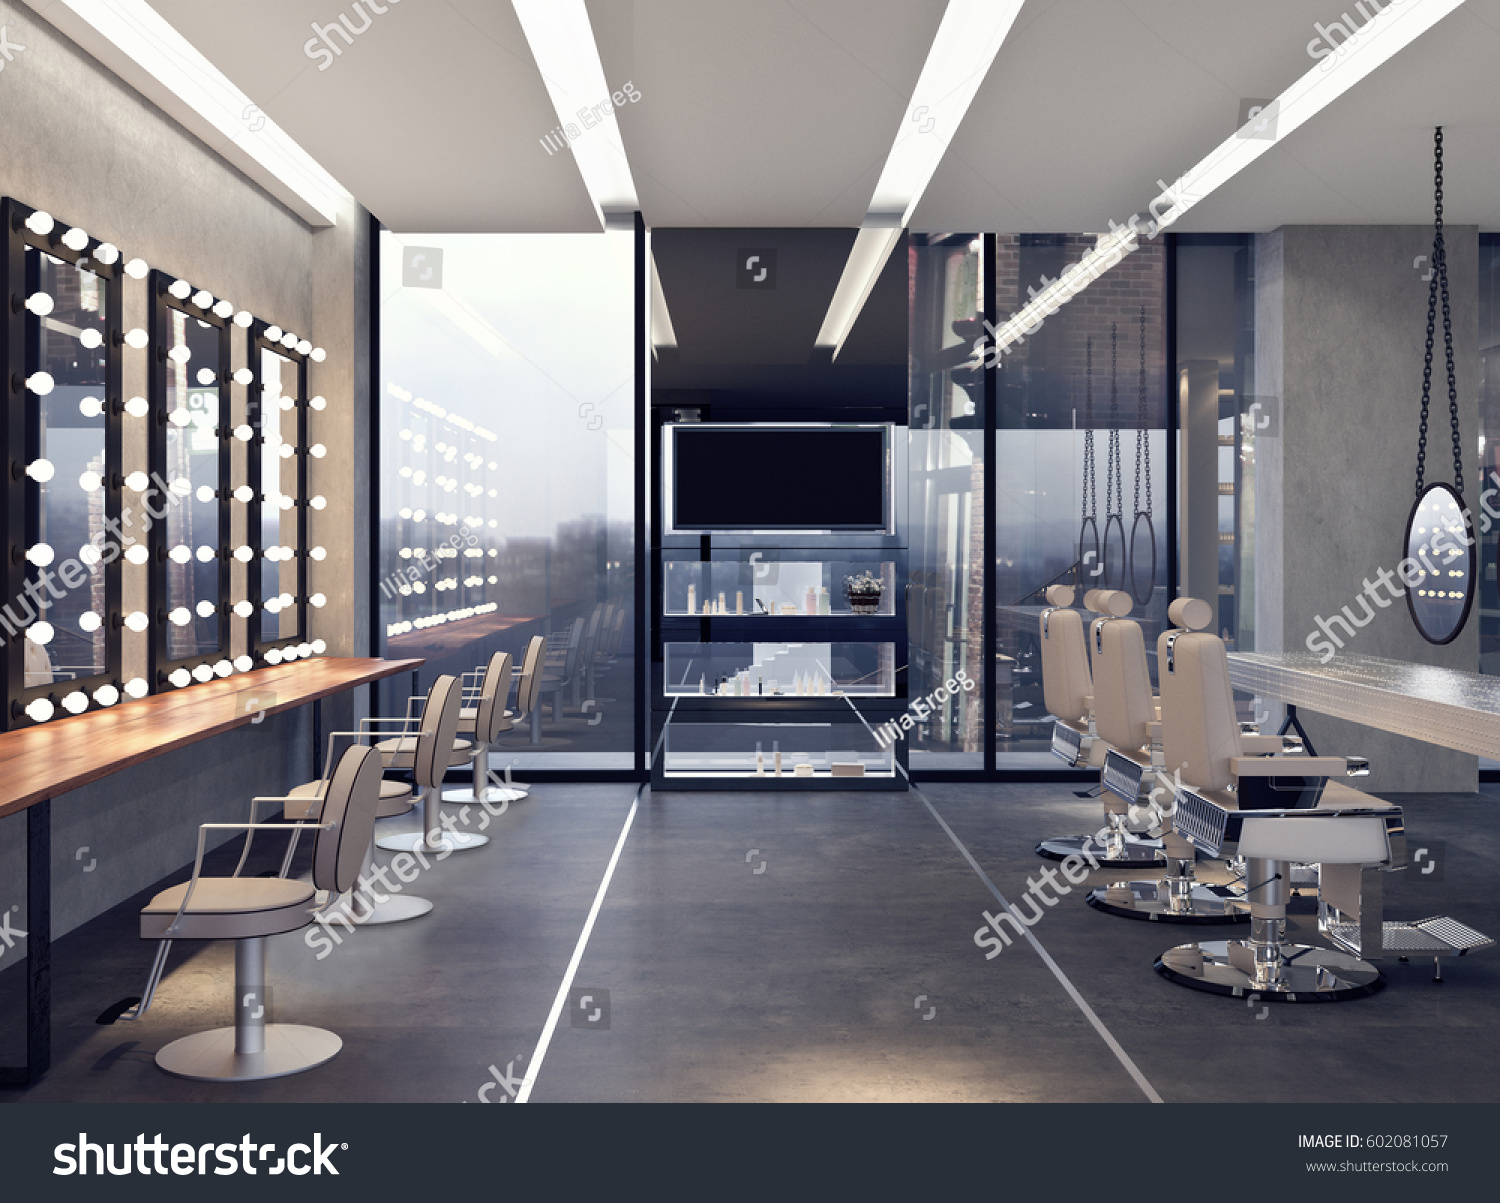 Modern Interior Design Salon 3d Rendering Stockillustration ...